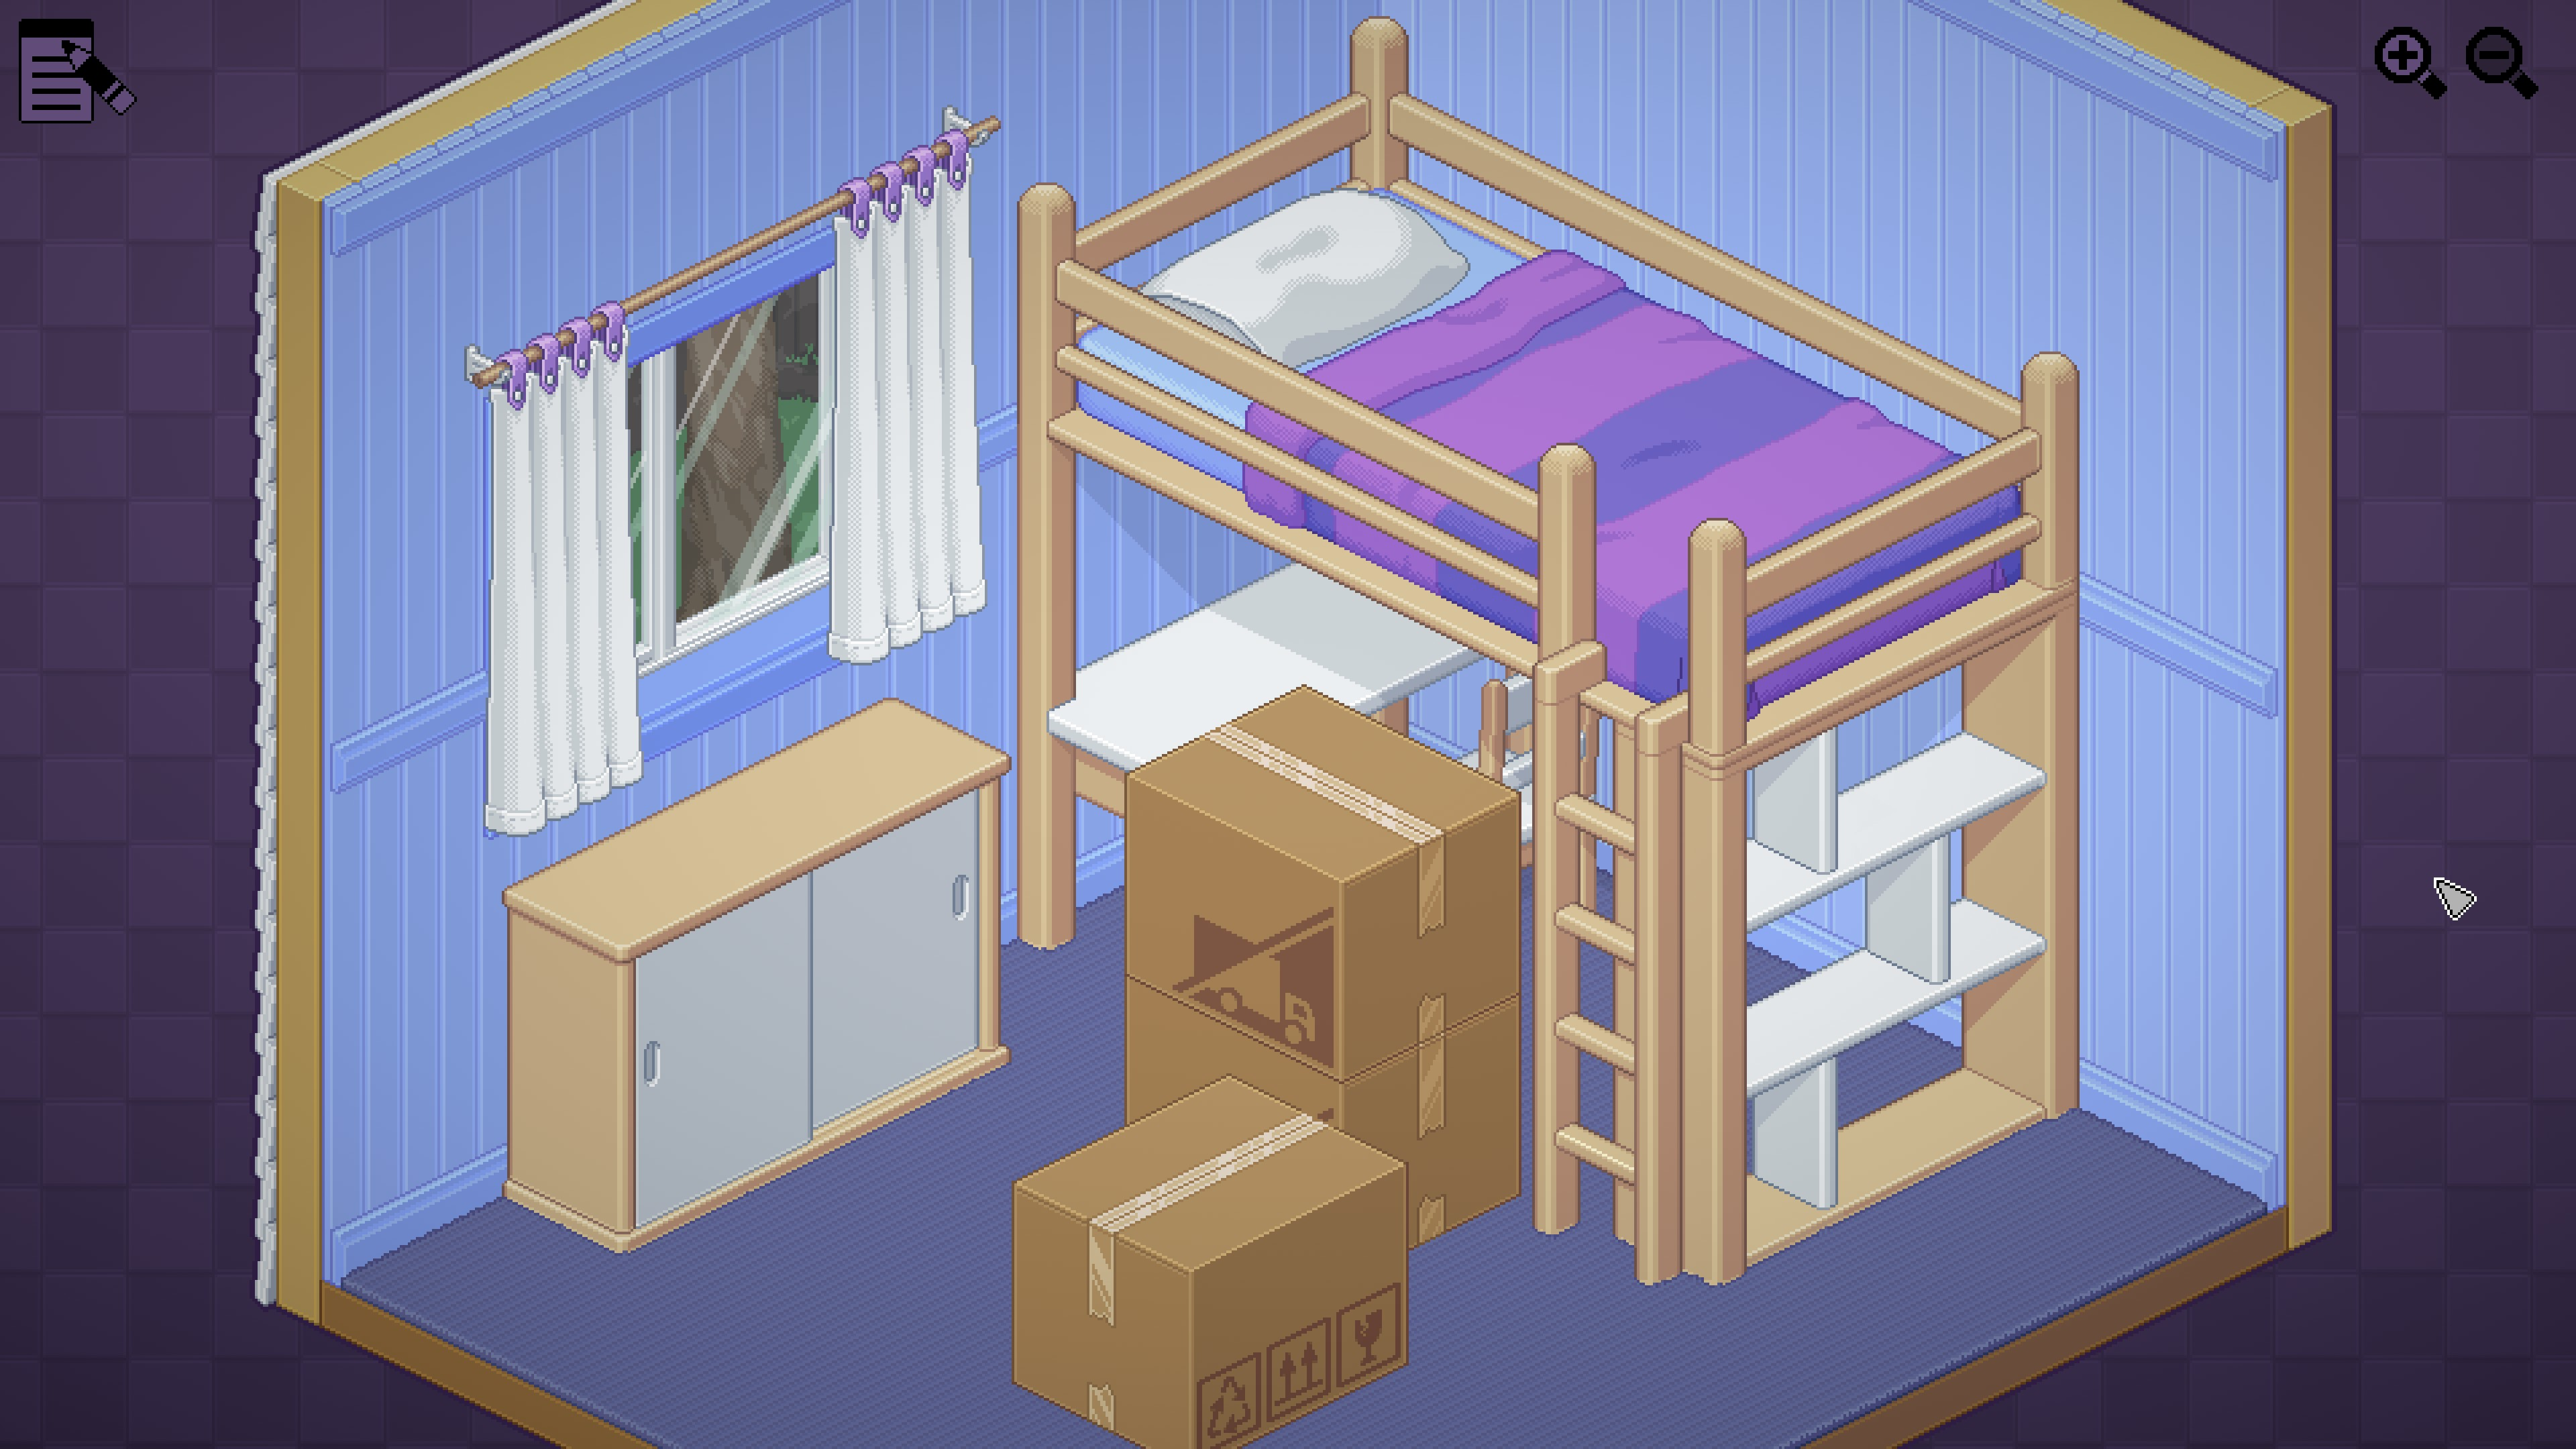 Unpacking. A bedroom with empty bunkbed and 3 large boxes